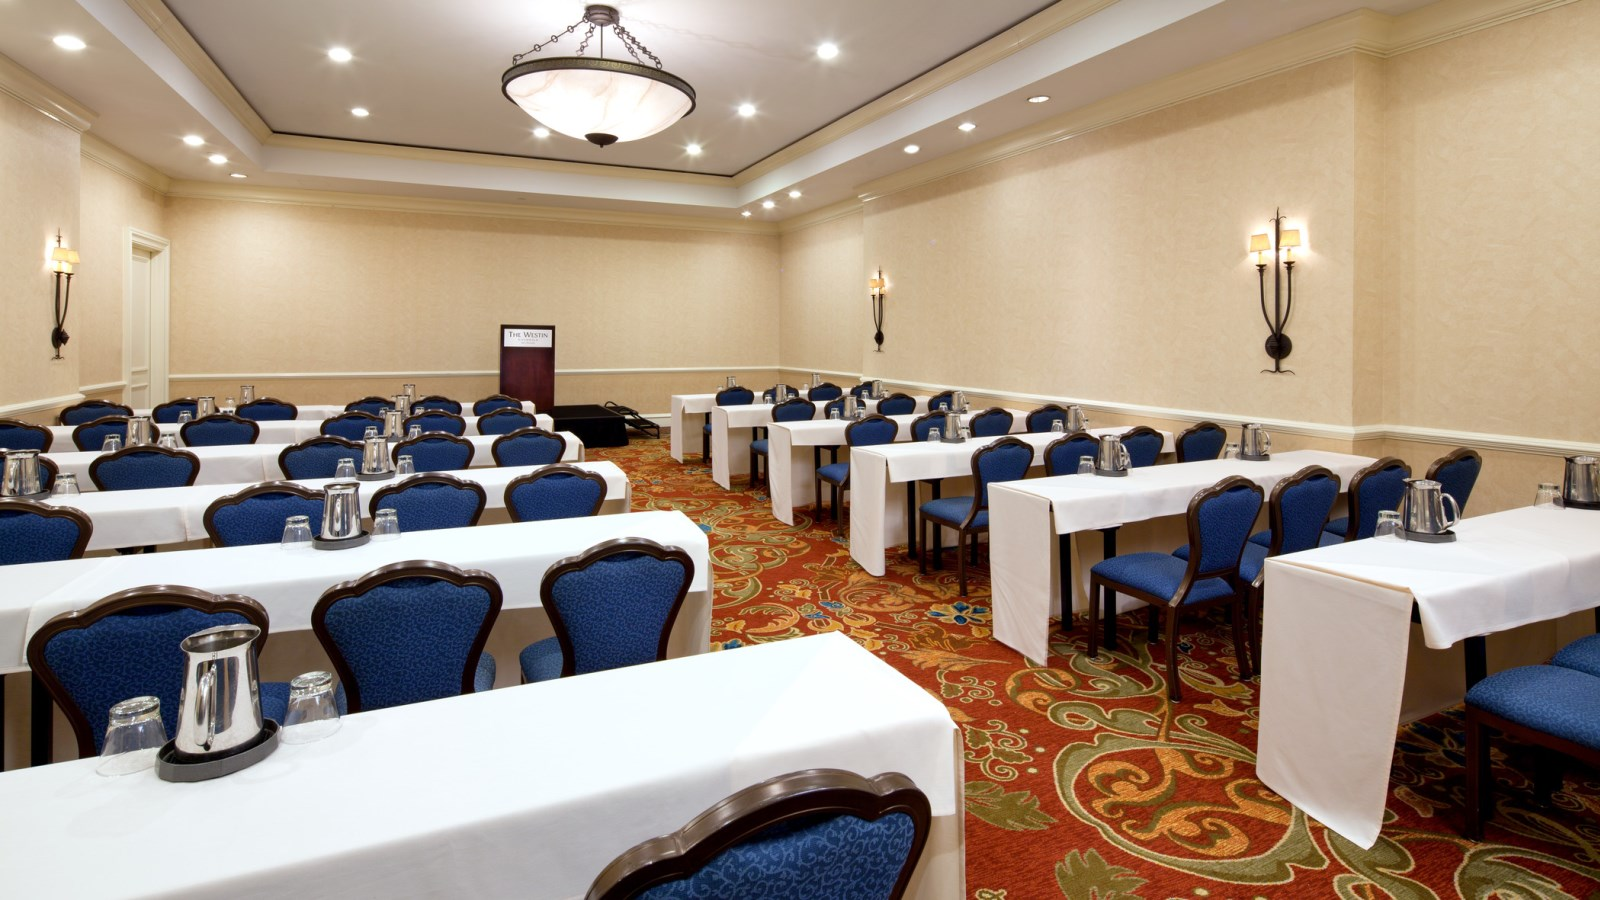 San Antonio Meeting Room - Encino Meeting Room